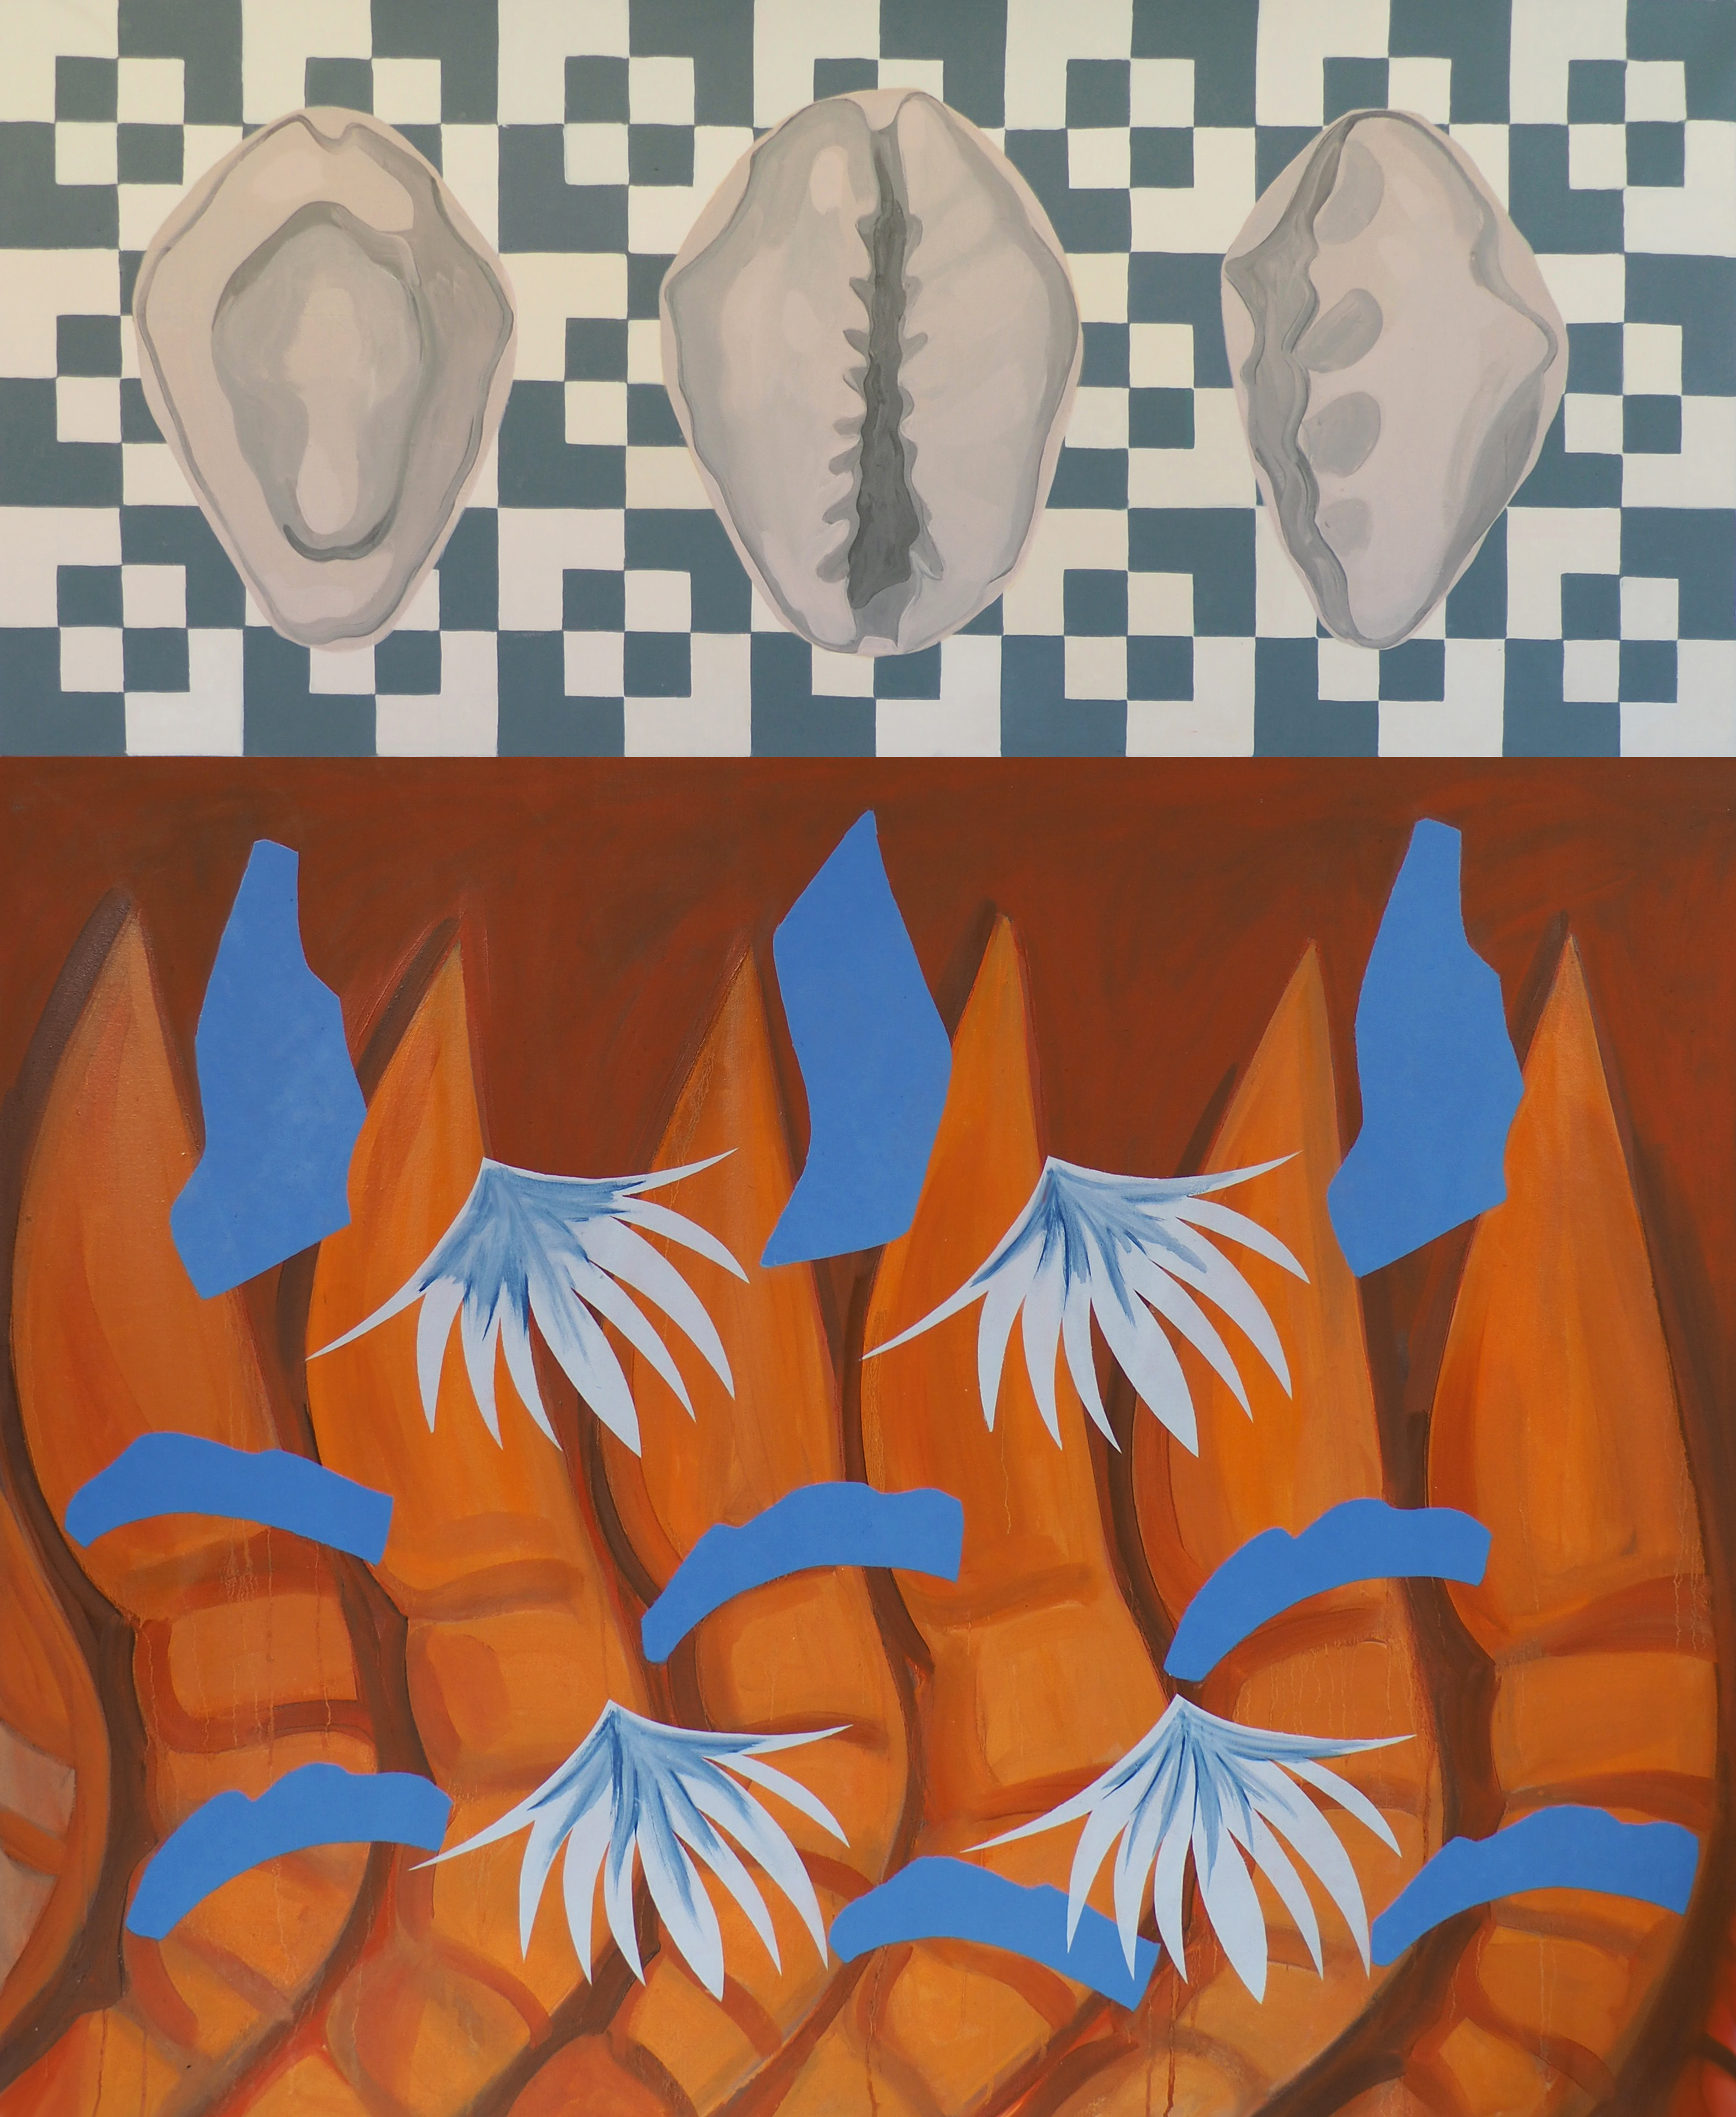 'Trapped in a shell', Oil on Canvas, 150x120cm